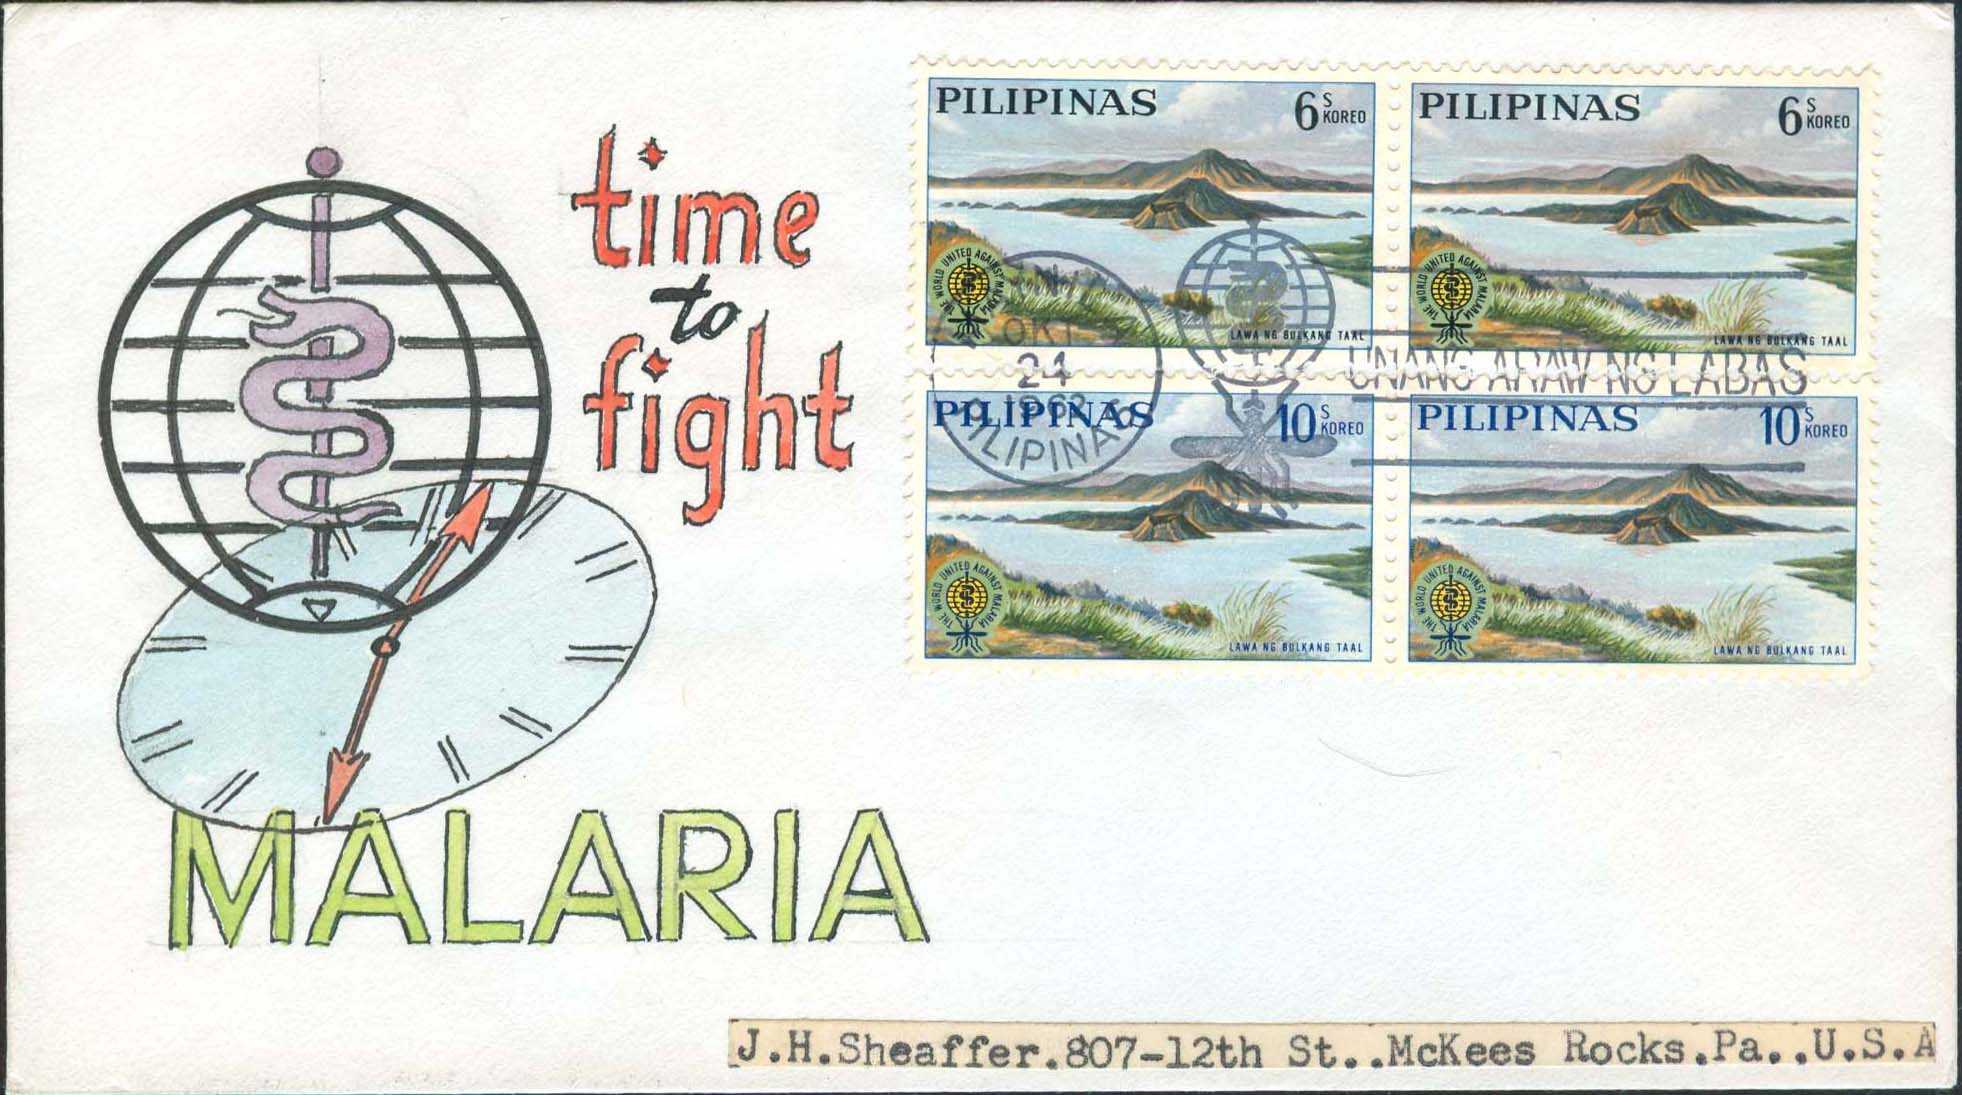 Philippines Scott 868-869 FDC - Produced By Ulrich